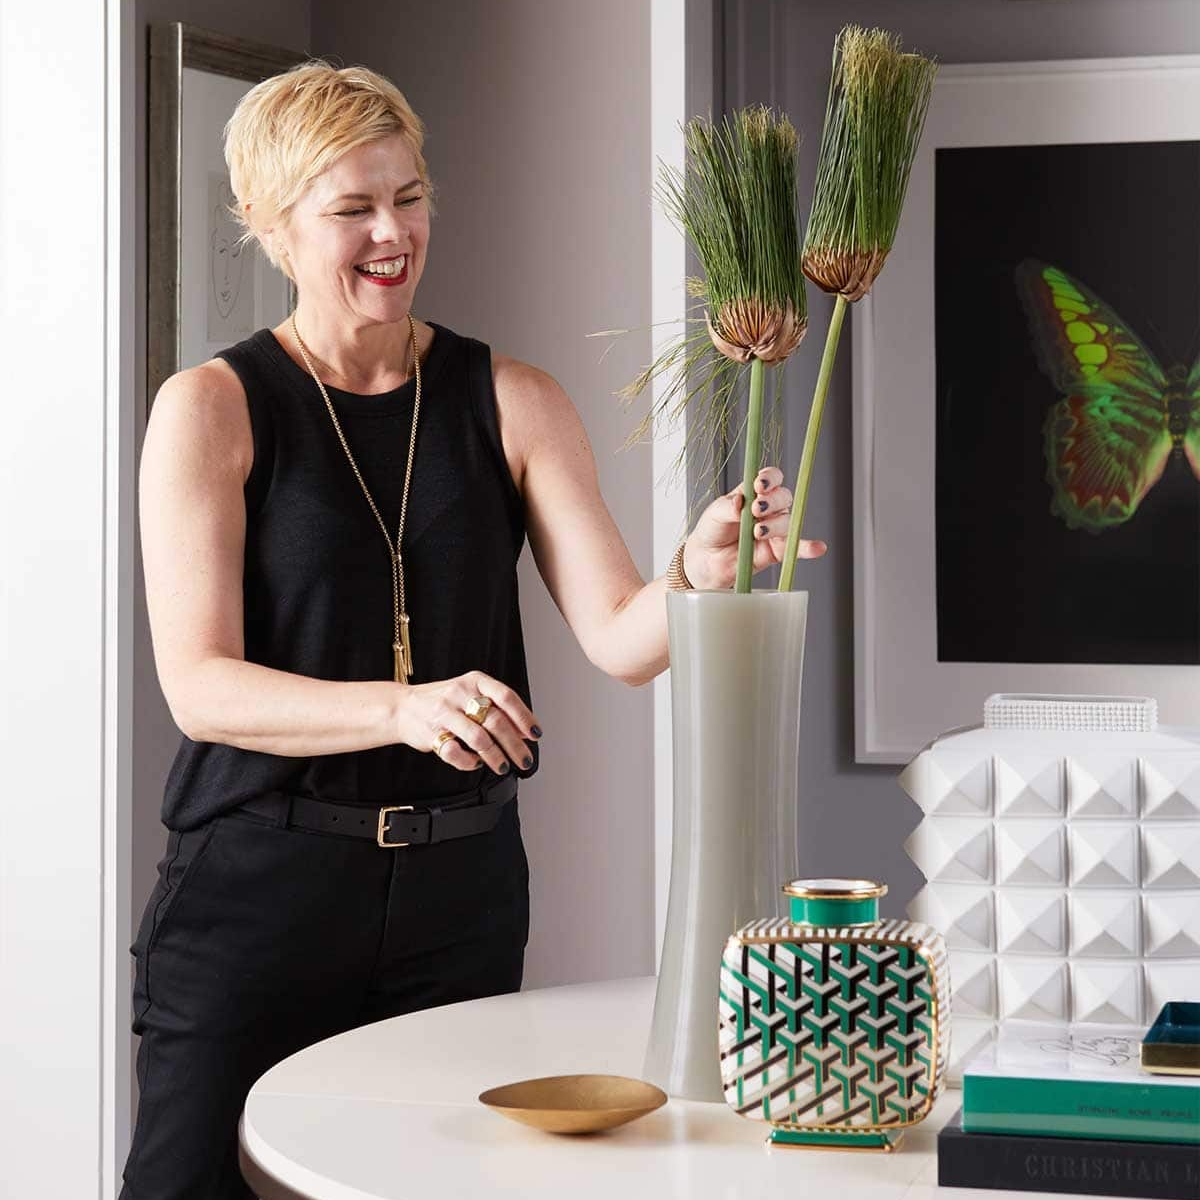 Behind the scenes of a bespoke bachelor pad renovation – Blog by Darci Hether New York